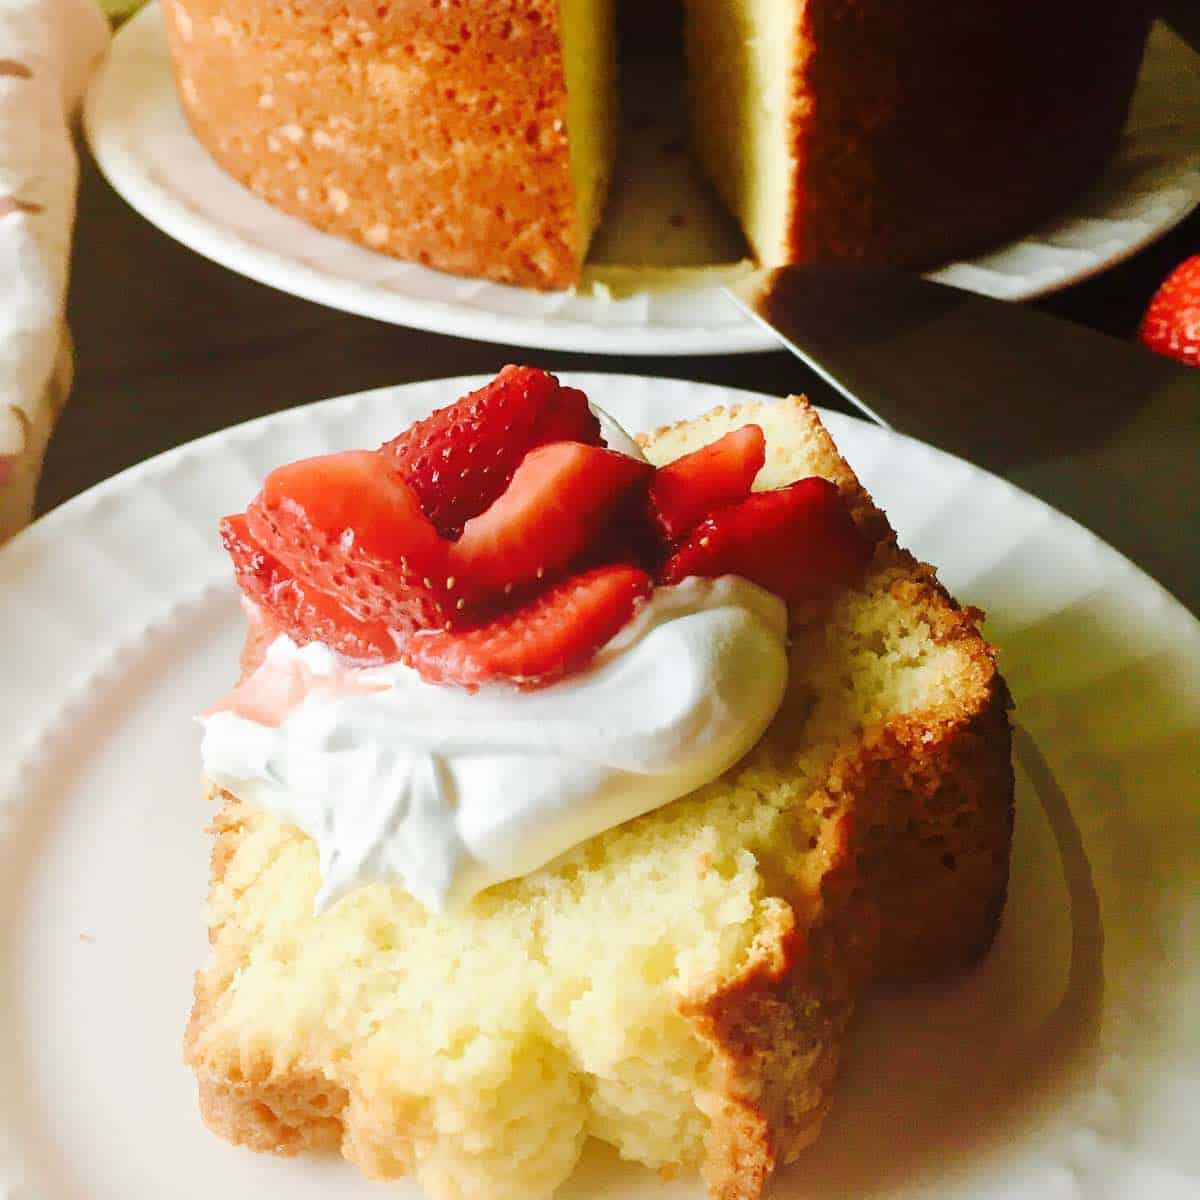 A slice of pound cake topped with whipped cream and sliced strawberries.